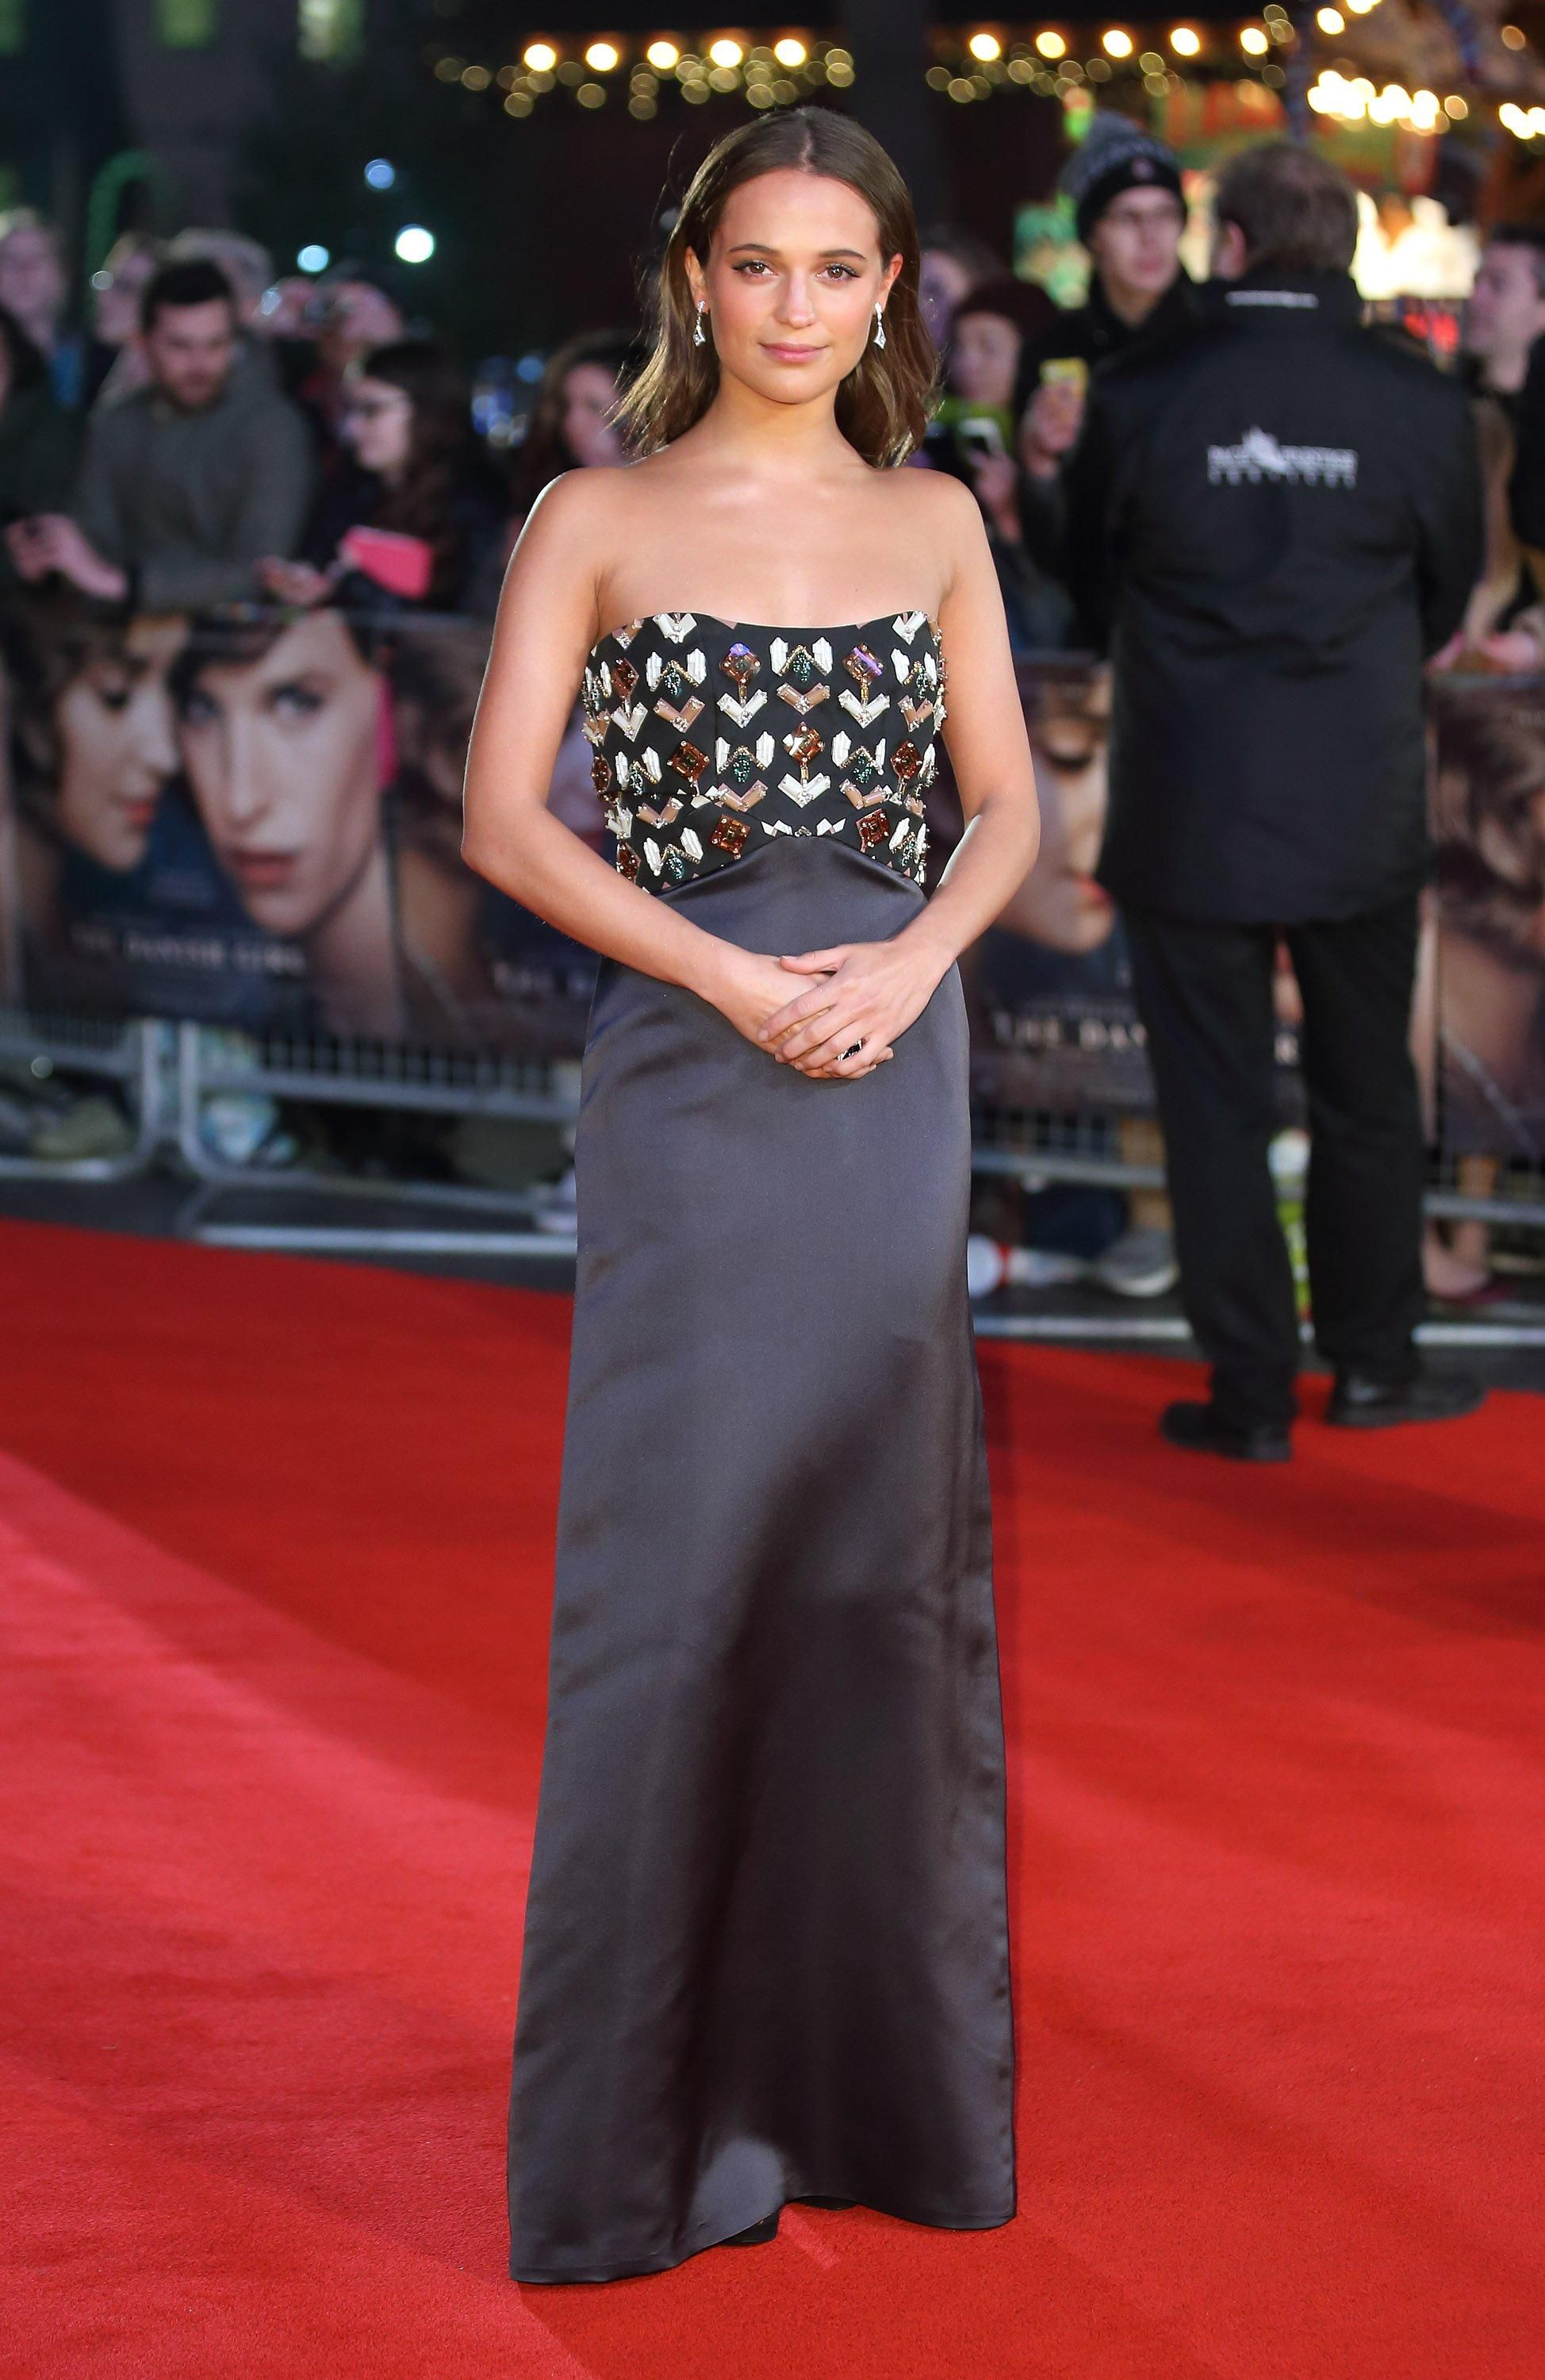 Alicia Vikander in Louis Vuitton at the premiere of The Danish Girl